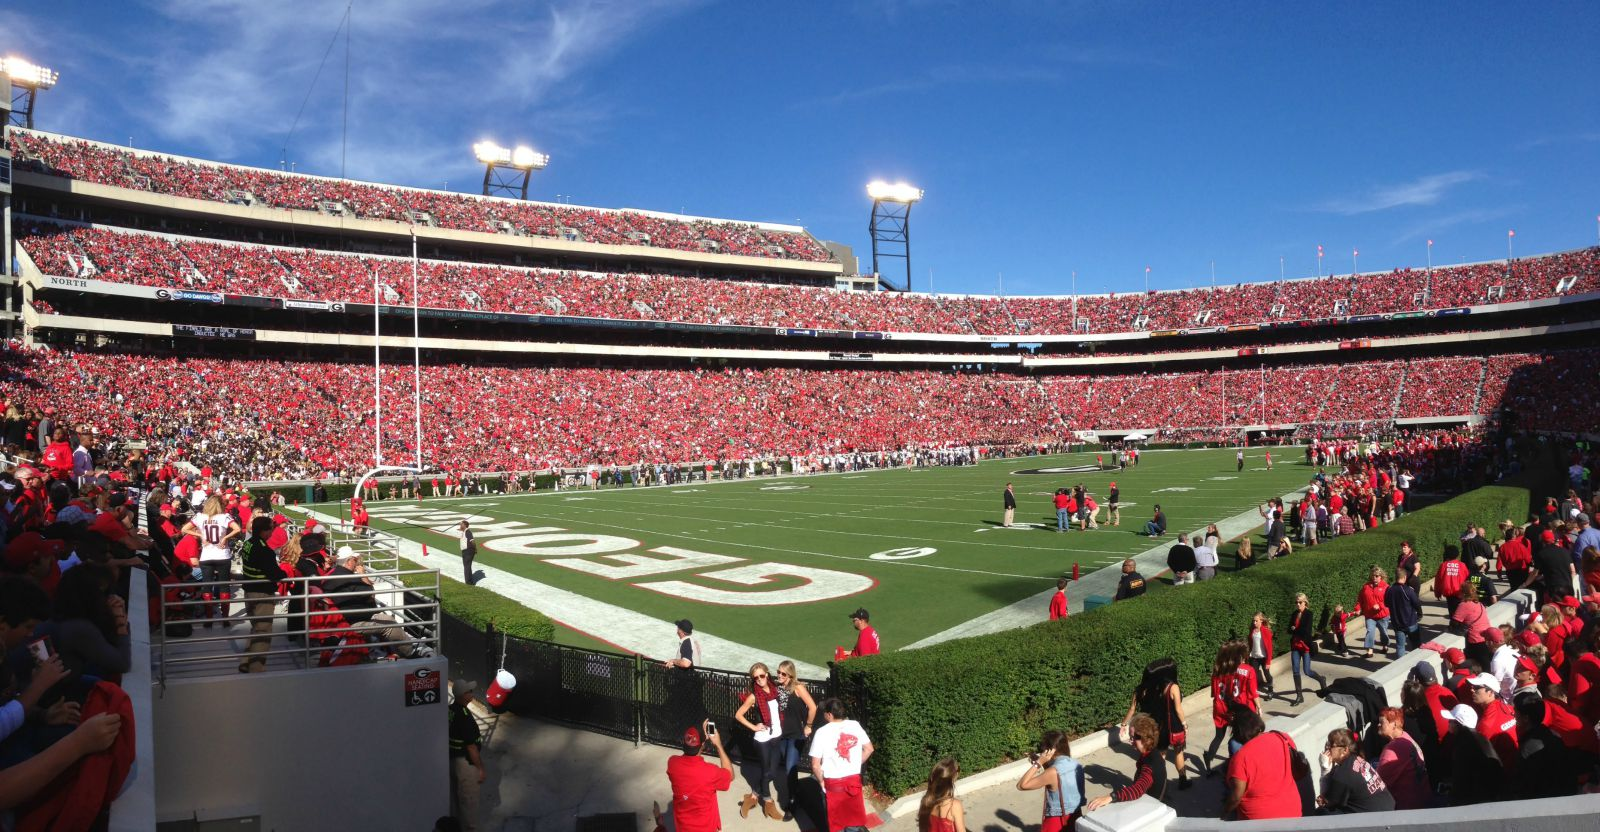 Sanford Stadium in Athens. Photo by Broad Collective